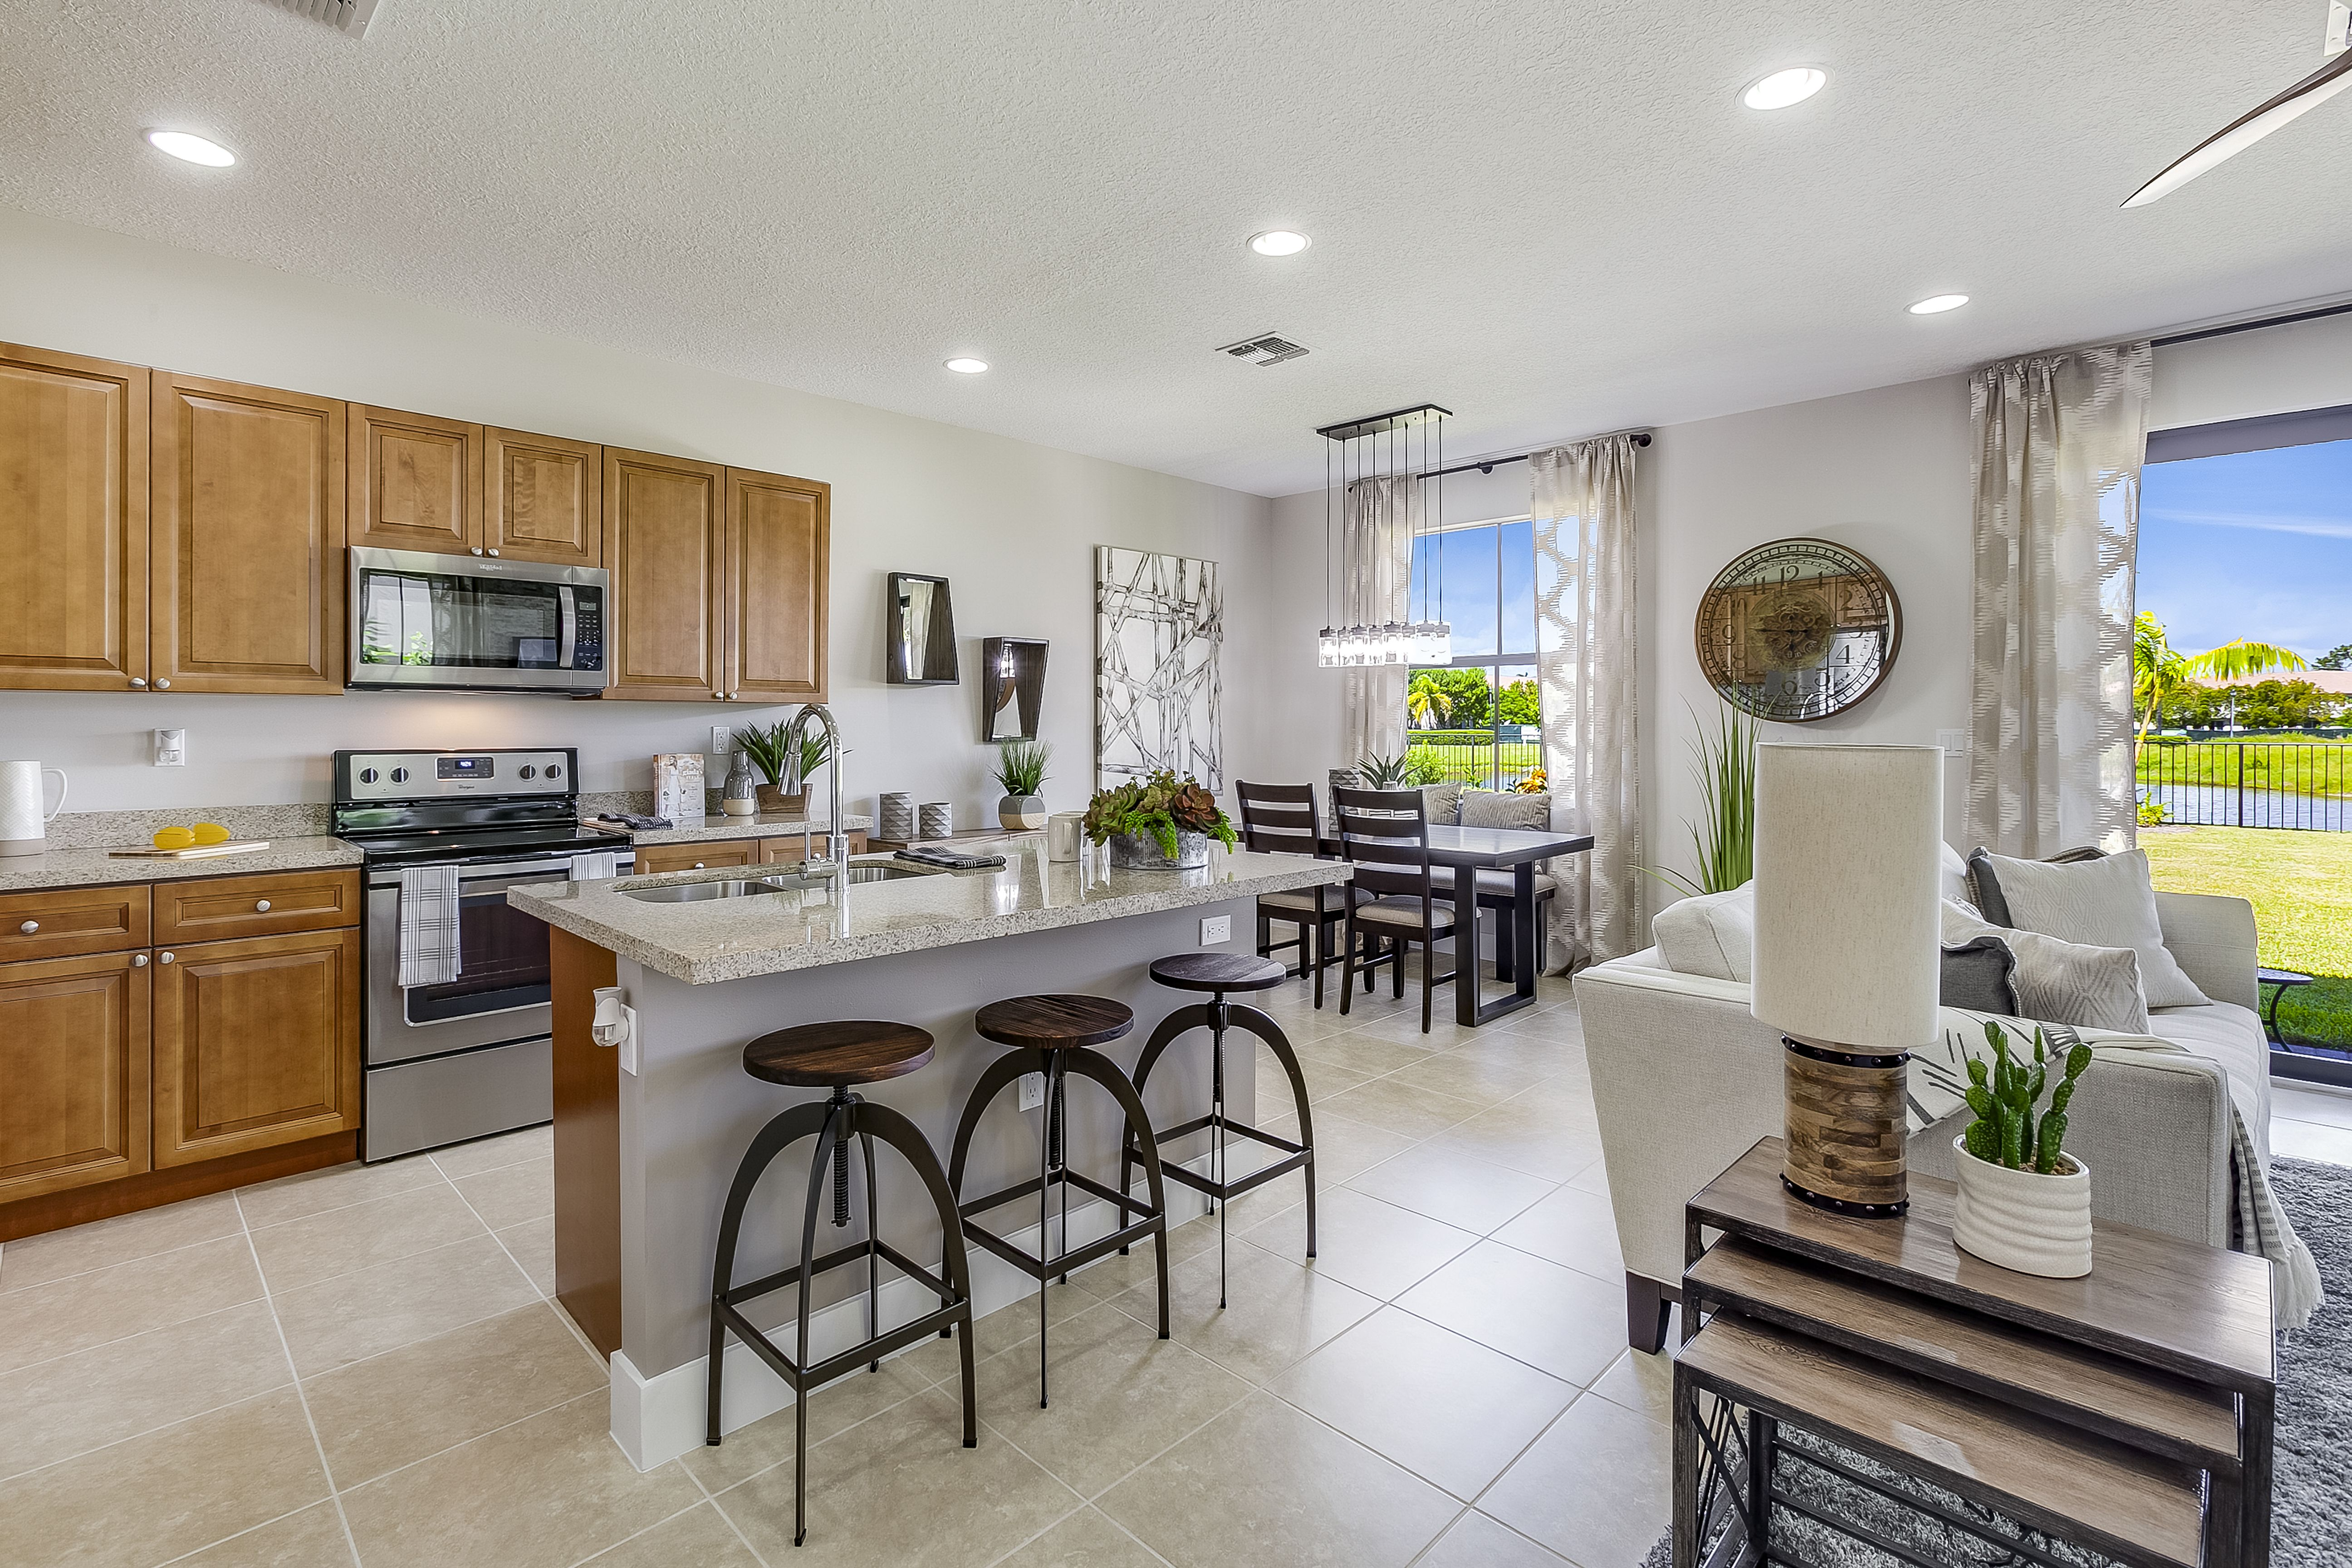 South Florida Top Home Builder New Homes In Broward And Palm Beach With Images Home Builders New Homes Home